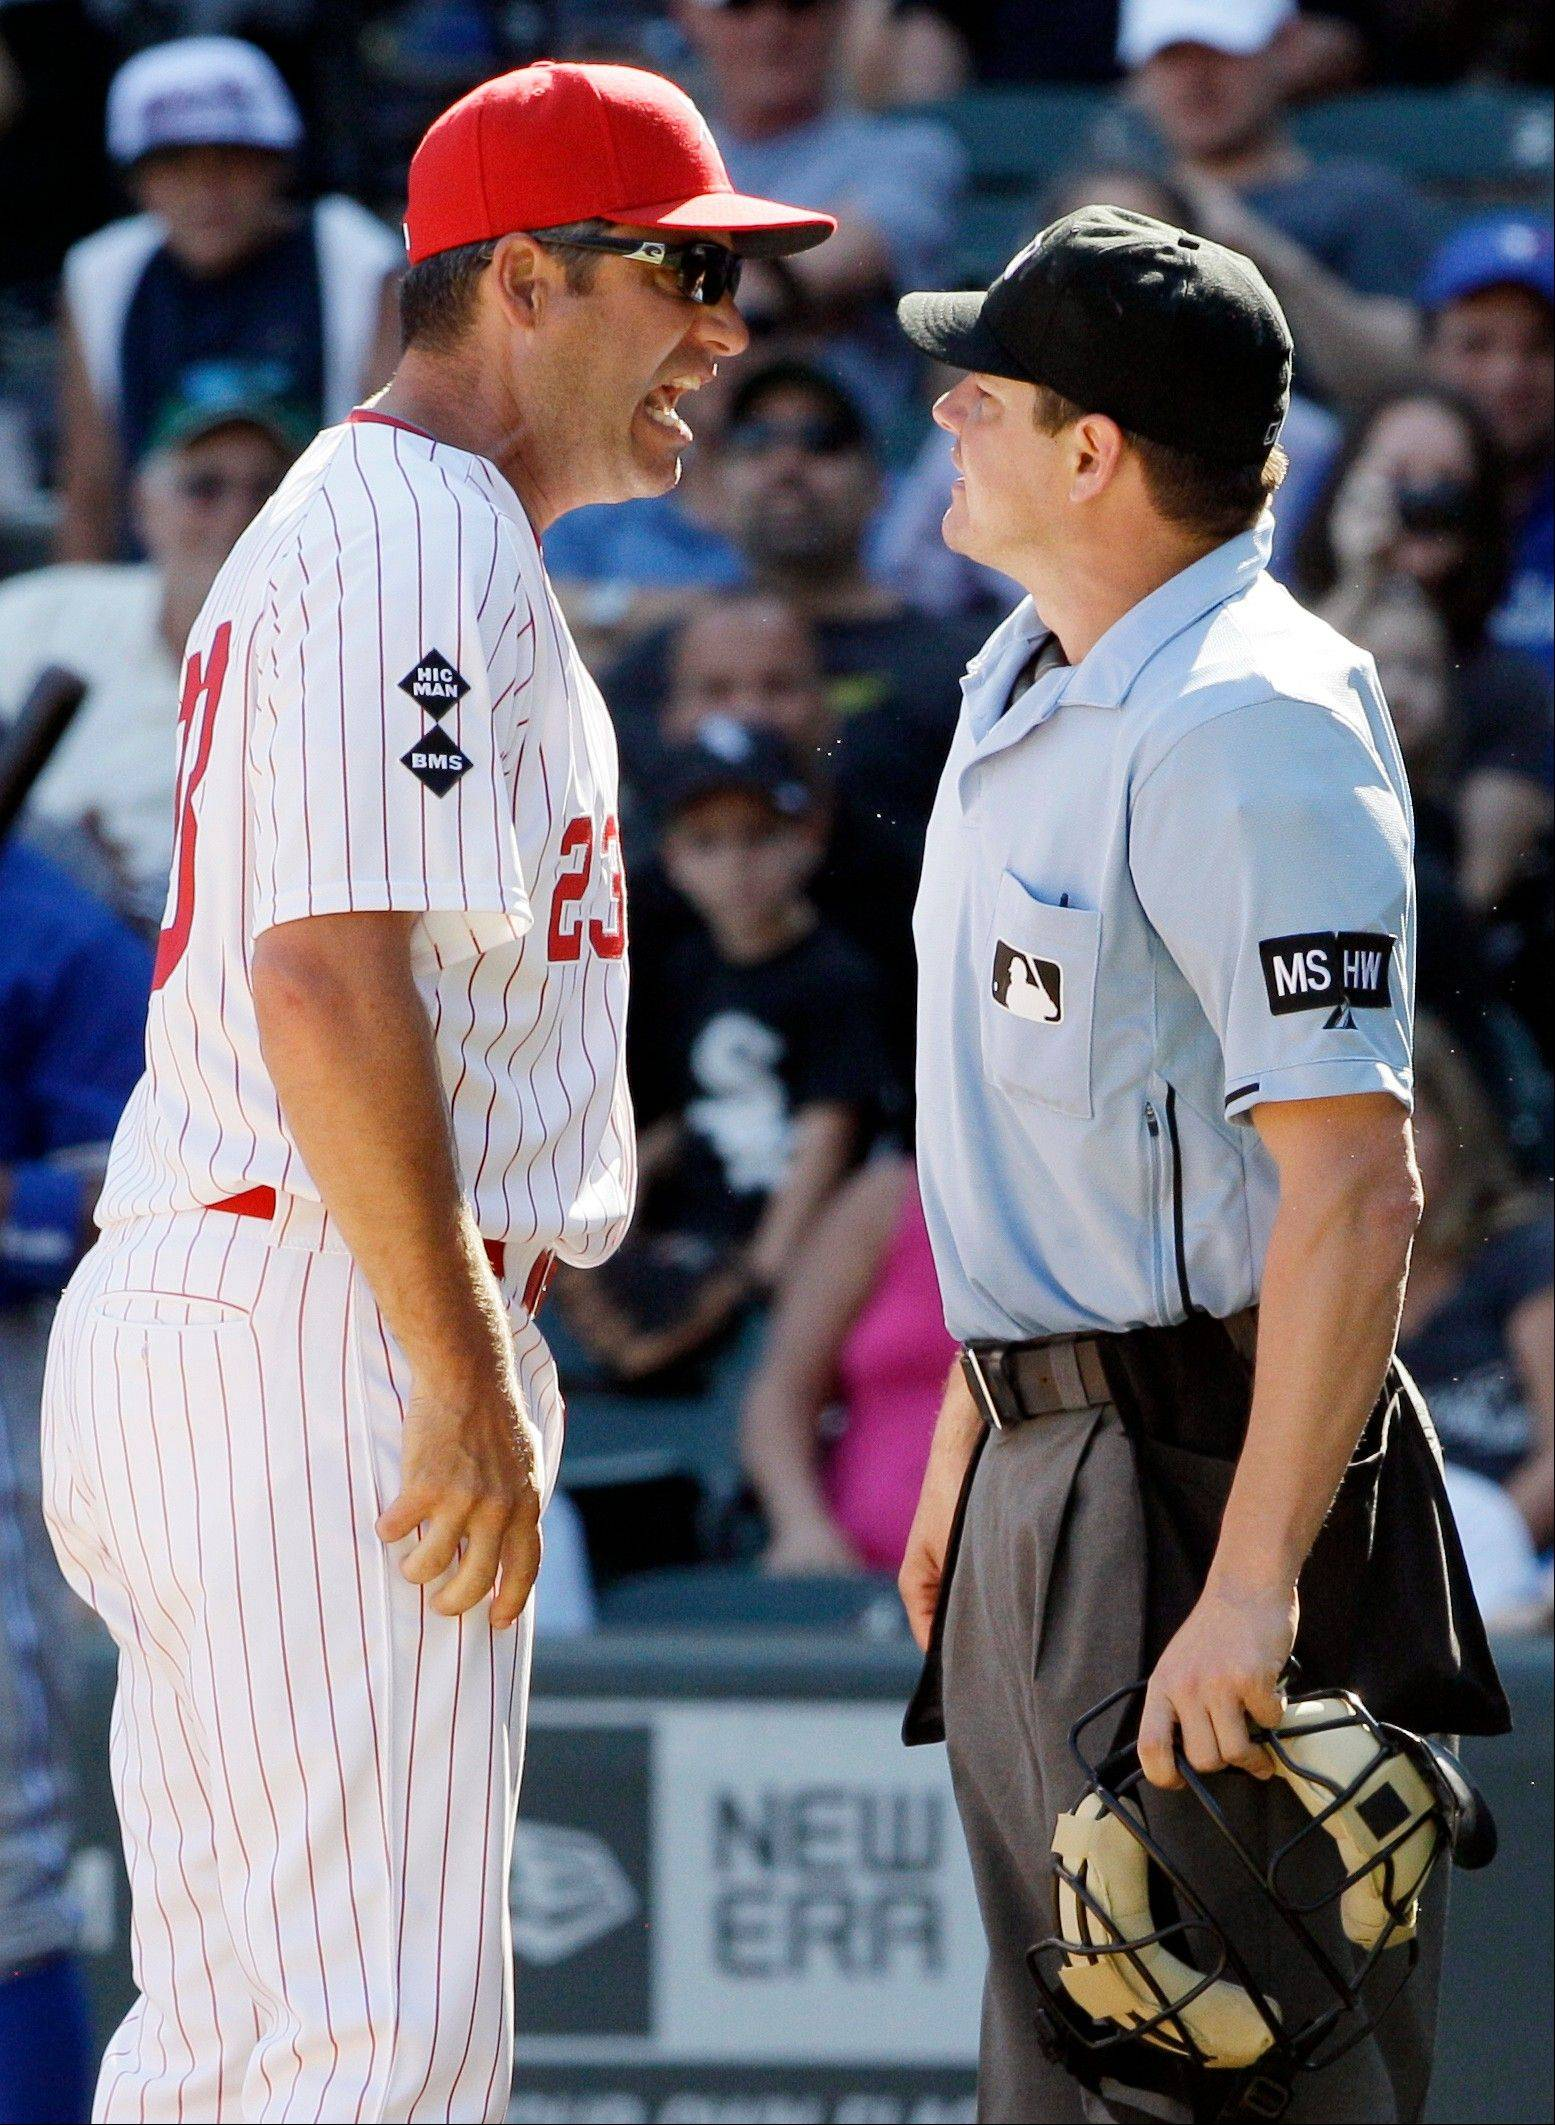 By the top of the ninth inning Sunday, White Sox manager Robin Ventura had seen enough and earned his second ejection this season when he argued balls and strike with home plate umpire D.J. Reyburn. Ventura was ejected on May 30 this season protesting the ejection of pitcher Jose Quintana.